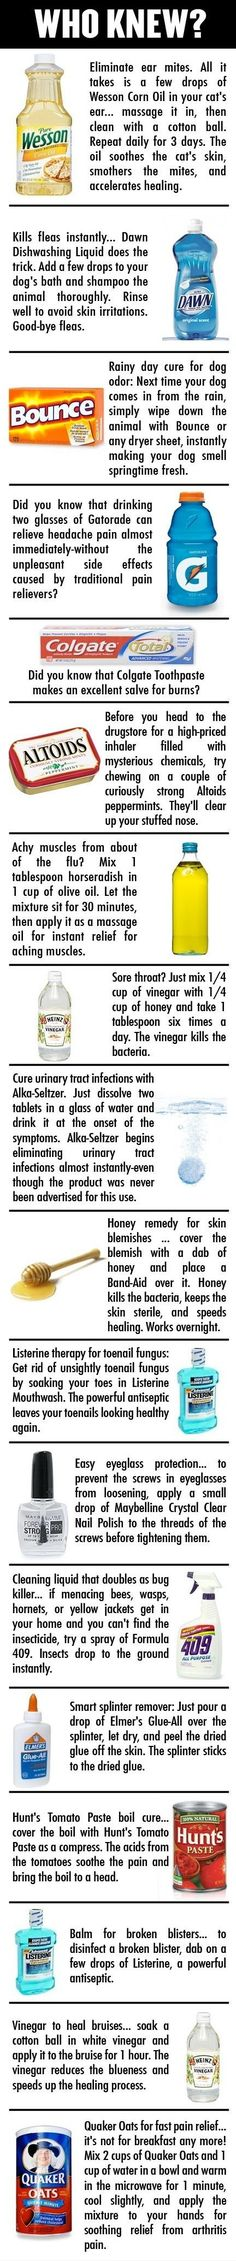 QUICK TIPS! - Dawn kills fleas, Colgate soothes burns, Altoids clear up stuffy noses and many more remedies. Life hacks // good to know tips Health Remedies, Home Remedies, Natural Remedies, Herbal Remedies, Tips And Tricks, Easy Tricks, Health And Beauty, Health And Wellness, Health Tips